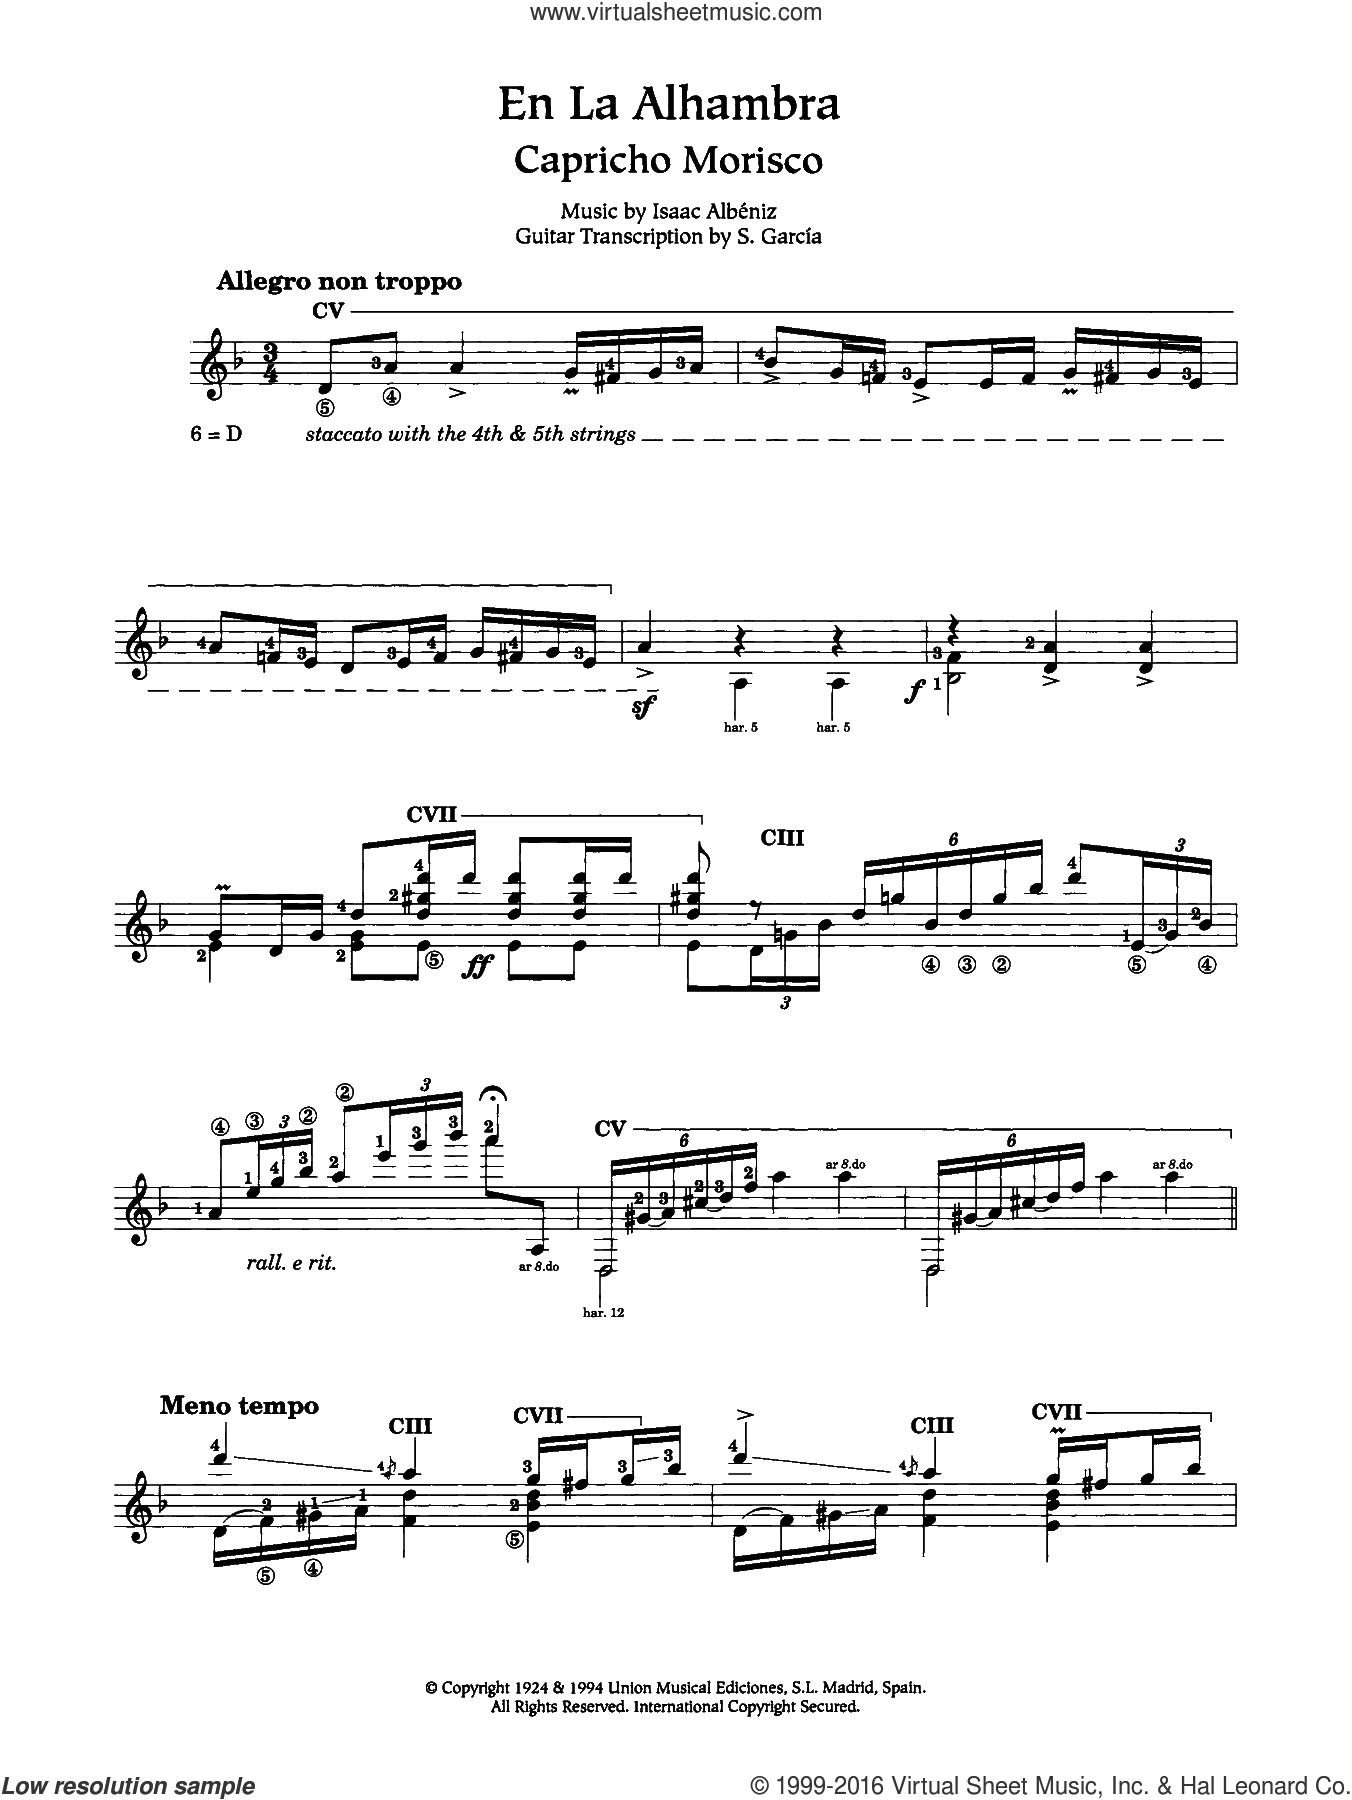 En La Alhambra (Capricho Morisco) sheet music for guitar solo (chords) by Isaac Albeniz, classical score, easy guitar (chords). Score Image Preview.